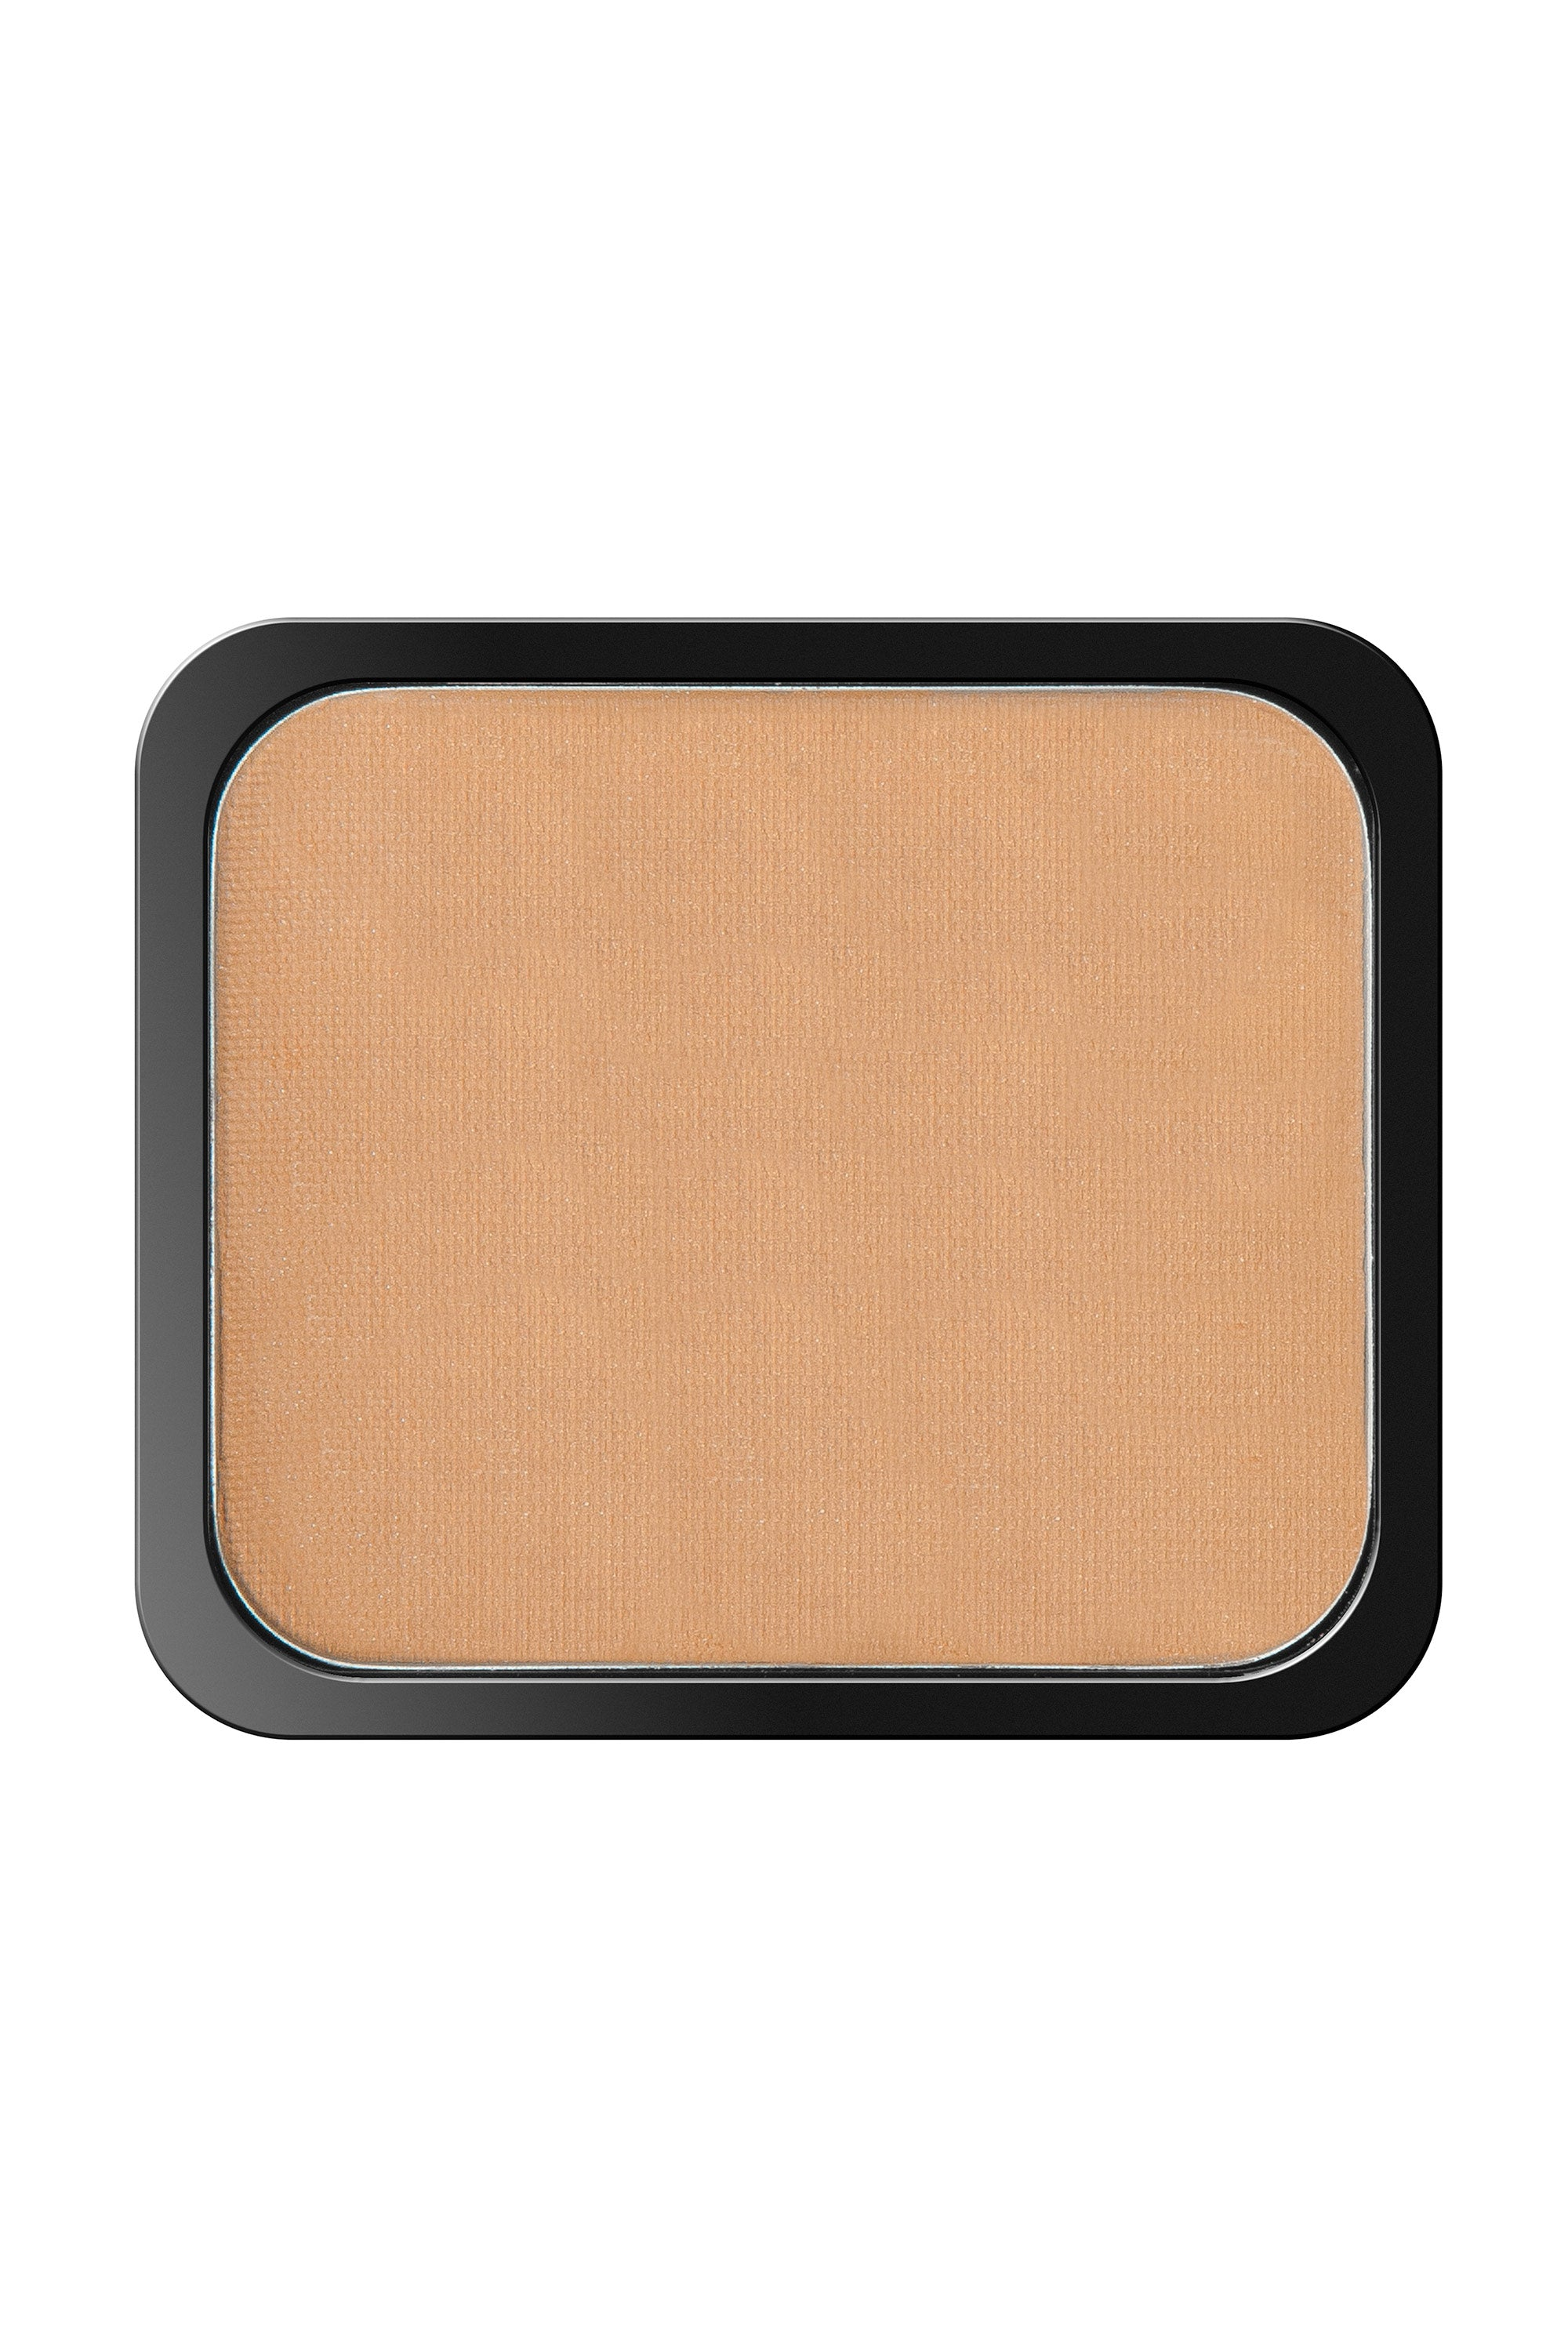 Two-Way Foundation - Natural Beige